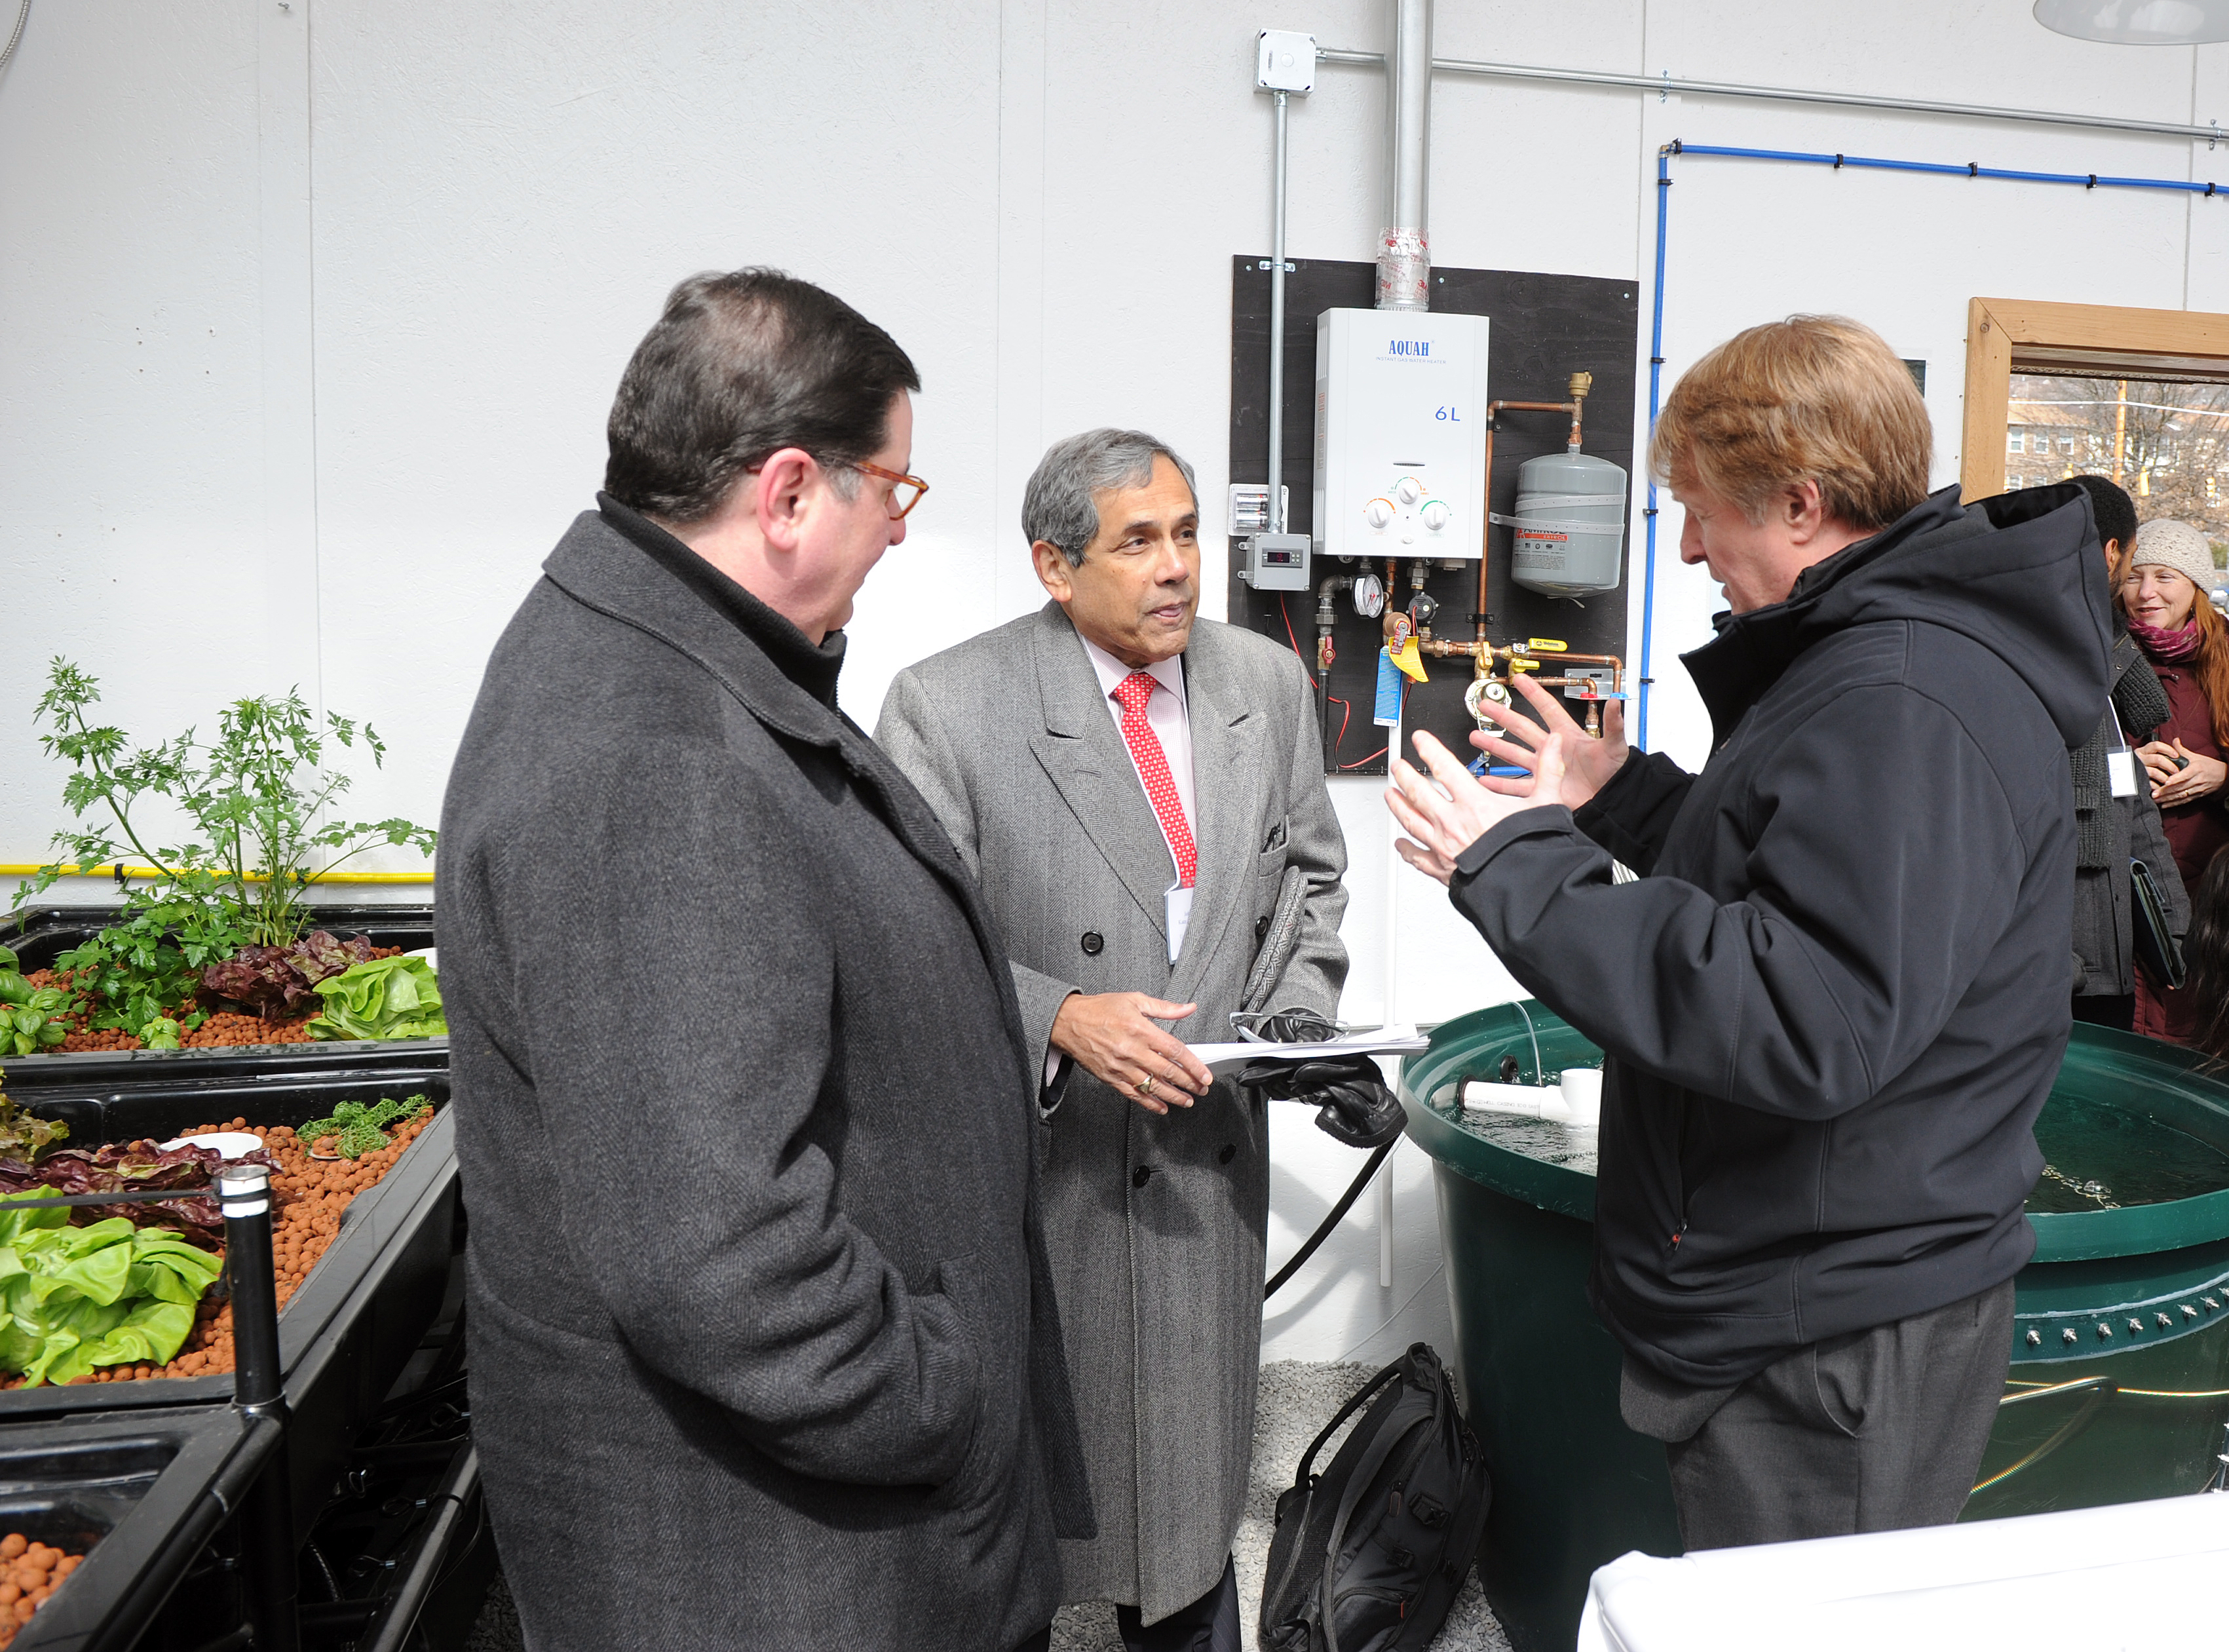 20170316ng-Greenhouse2-1 University of Pittsburgh professor John Camillus speaks Thursday with Mayor Bill Peduto and County Executive Rich Fitzgerald about the solar-powered bioshelter on Fleury Way in Homewood.